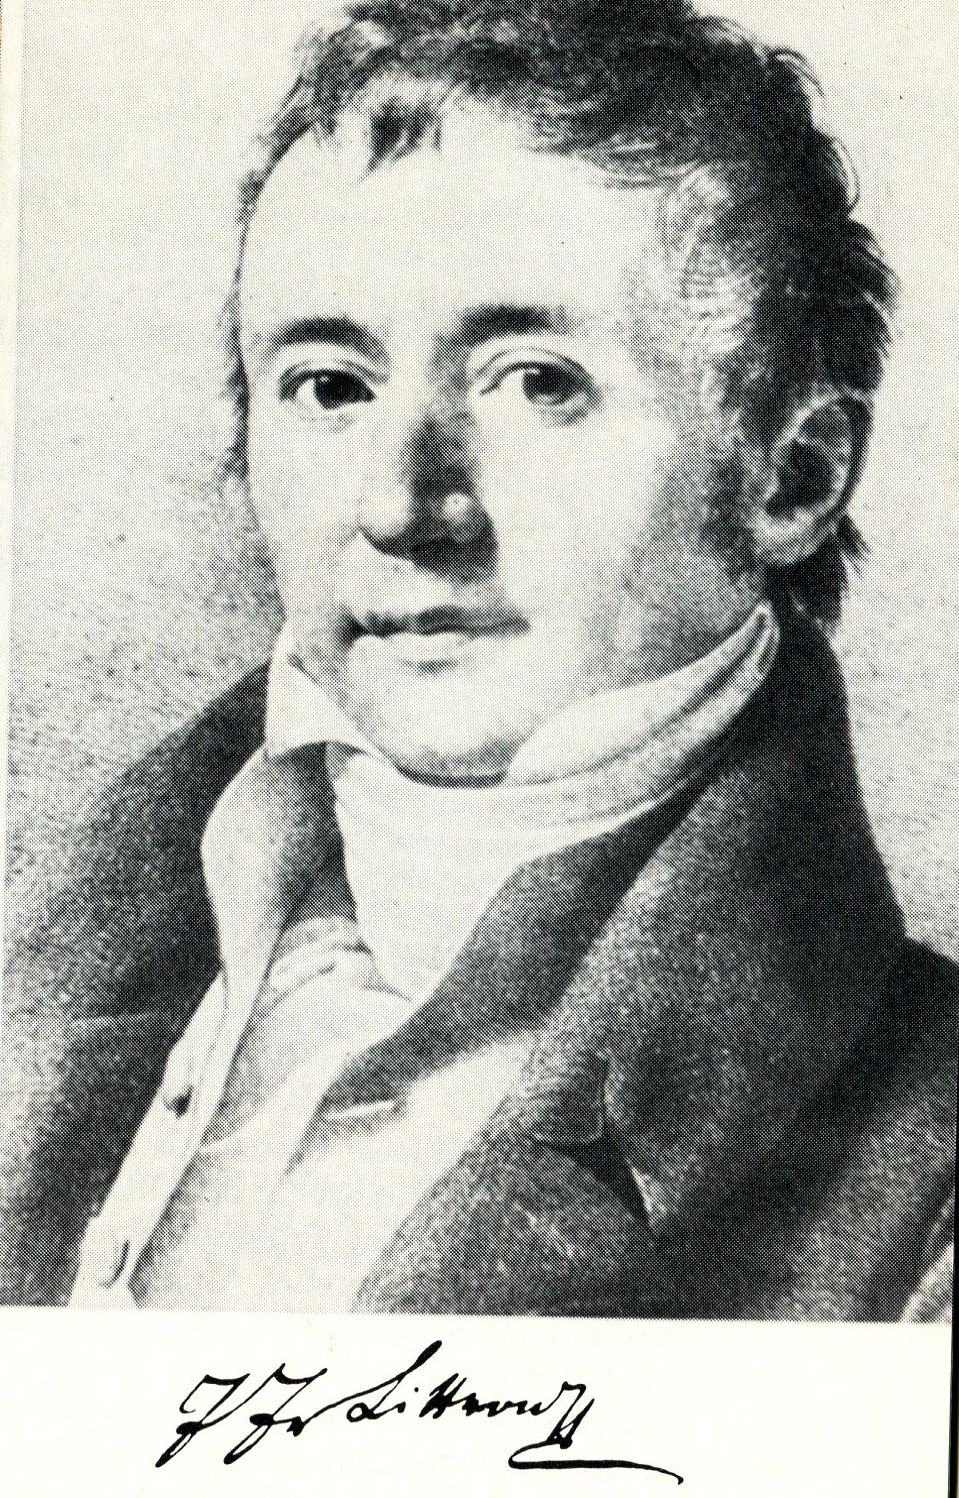 Josef Johann Littrow